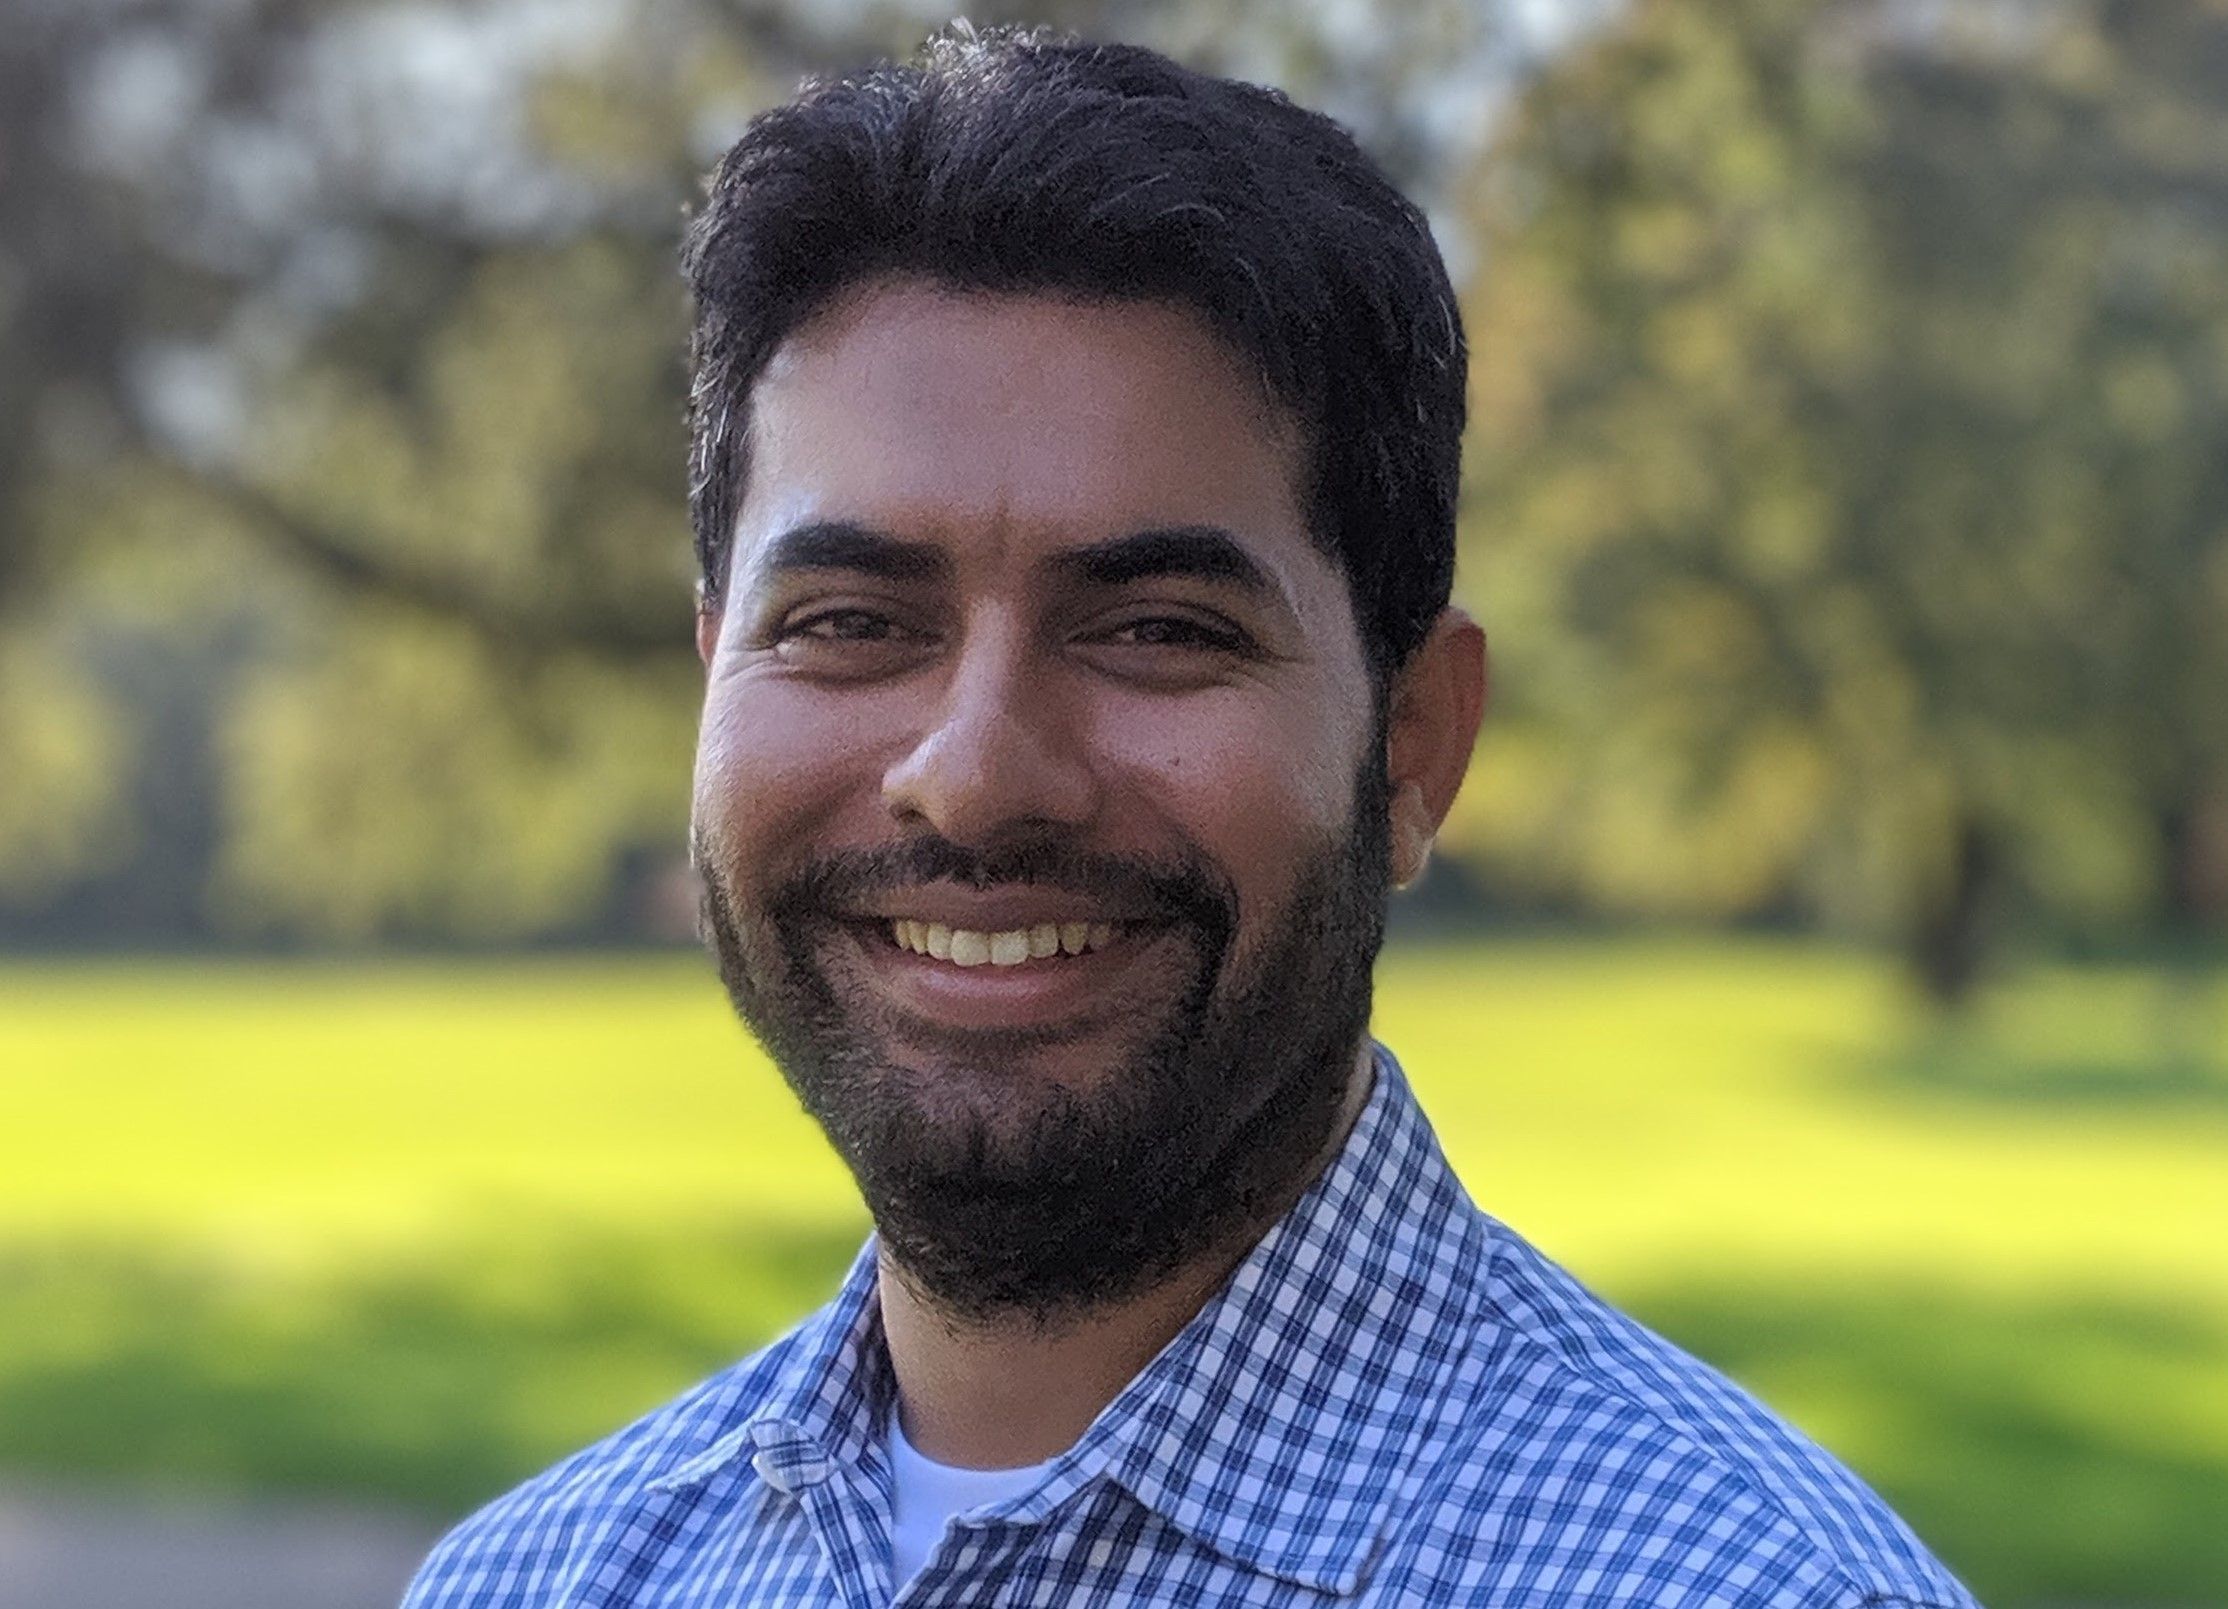 Welcome to our new faculty, Dr. Ankit Goel!